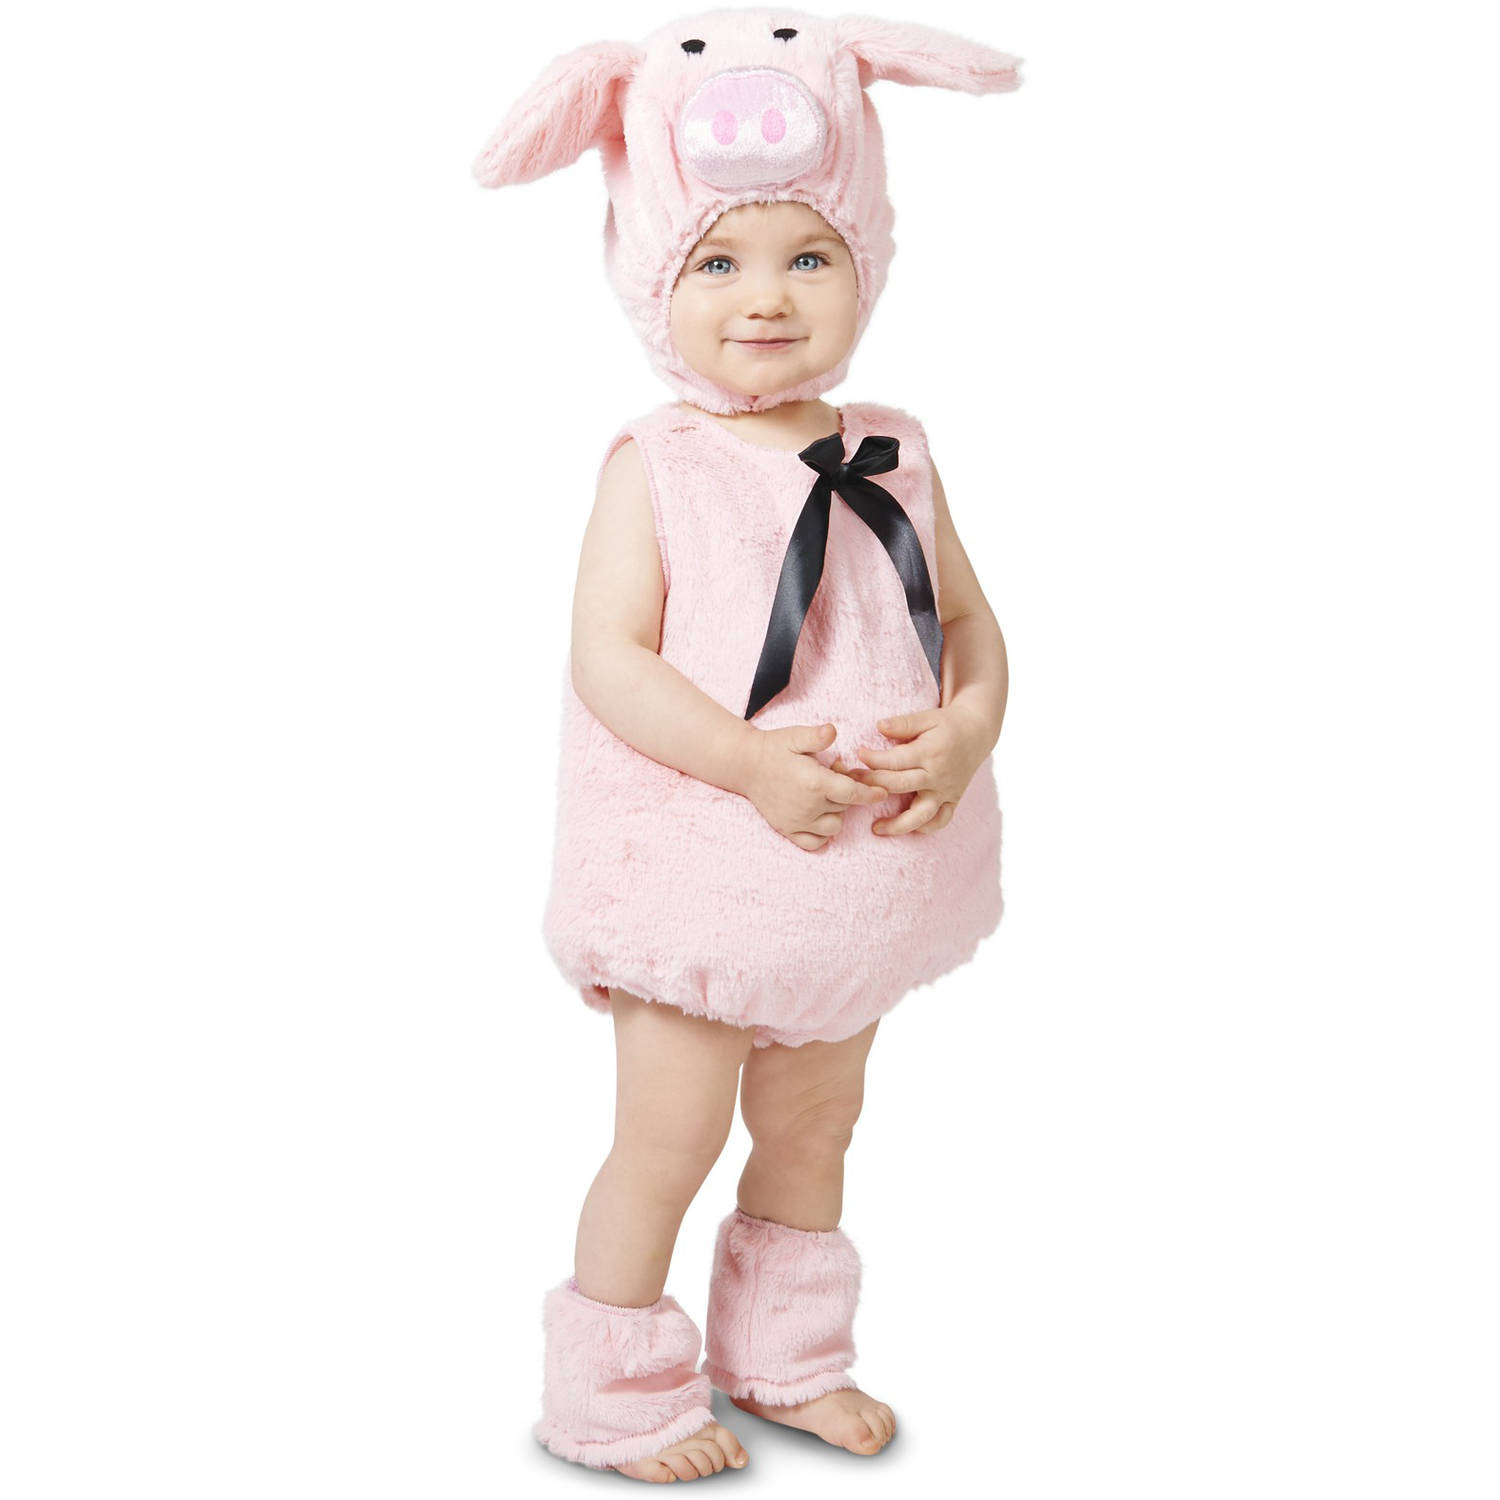 sc 1 st  Walmart & Little Pink Piglet Infant Halloween Costume - Walmart.com